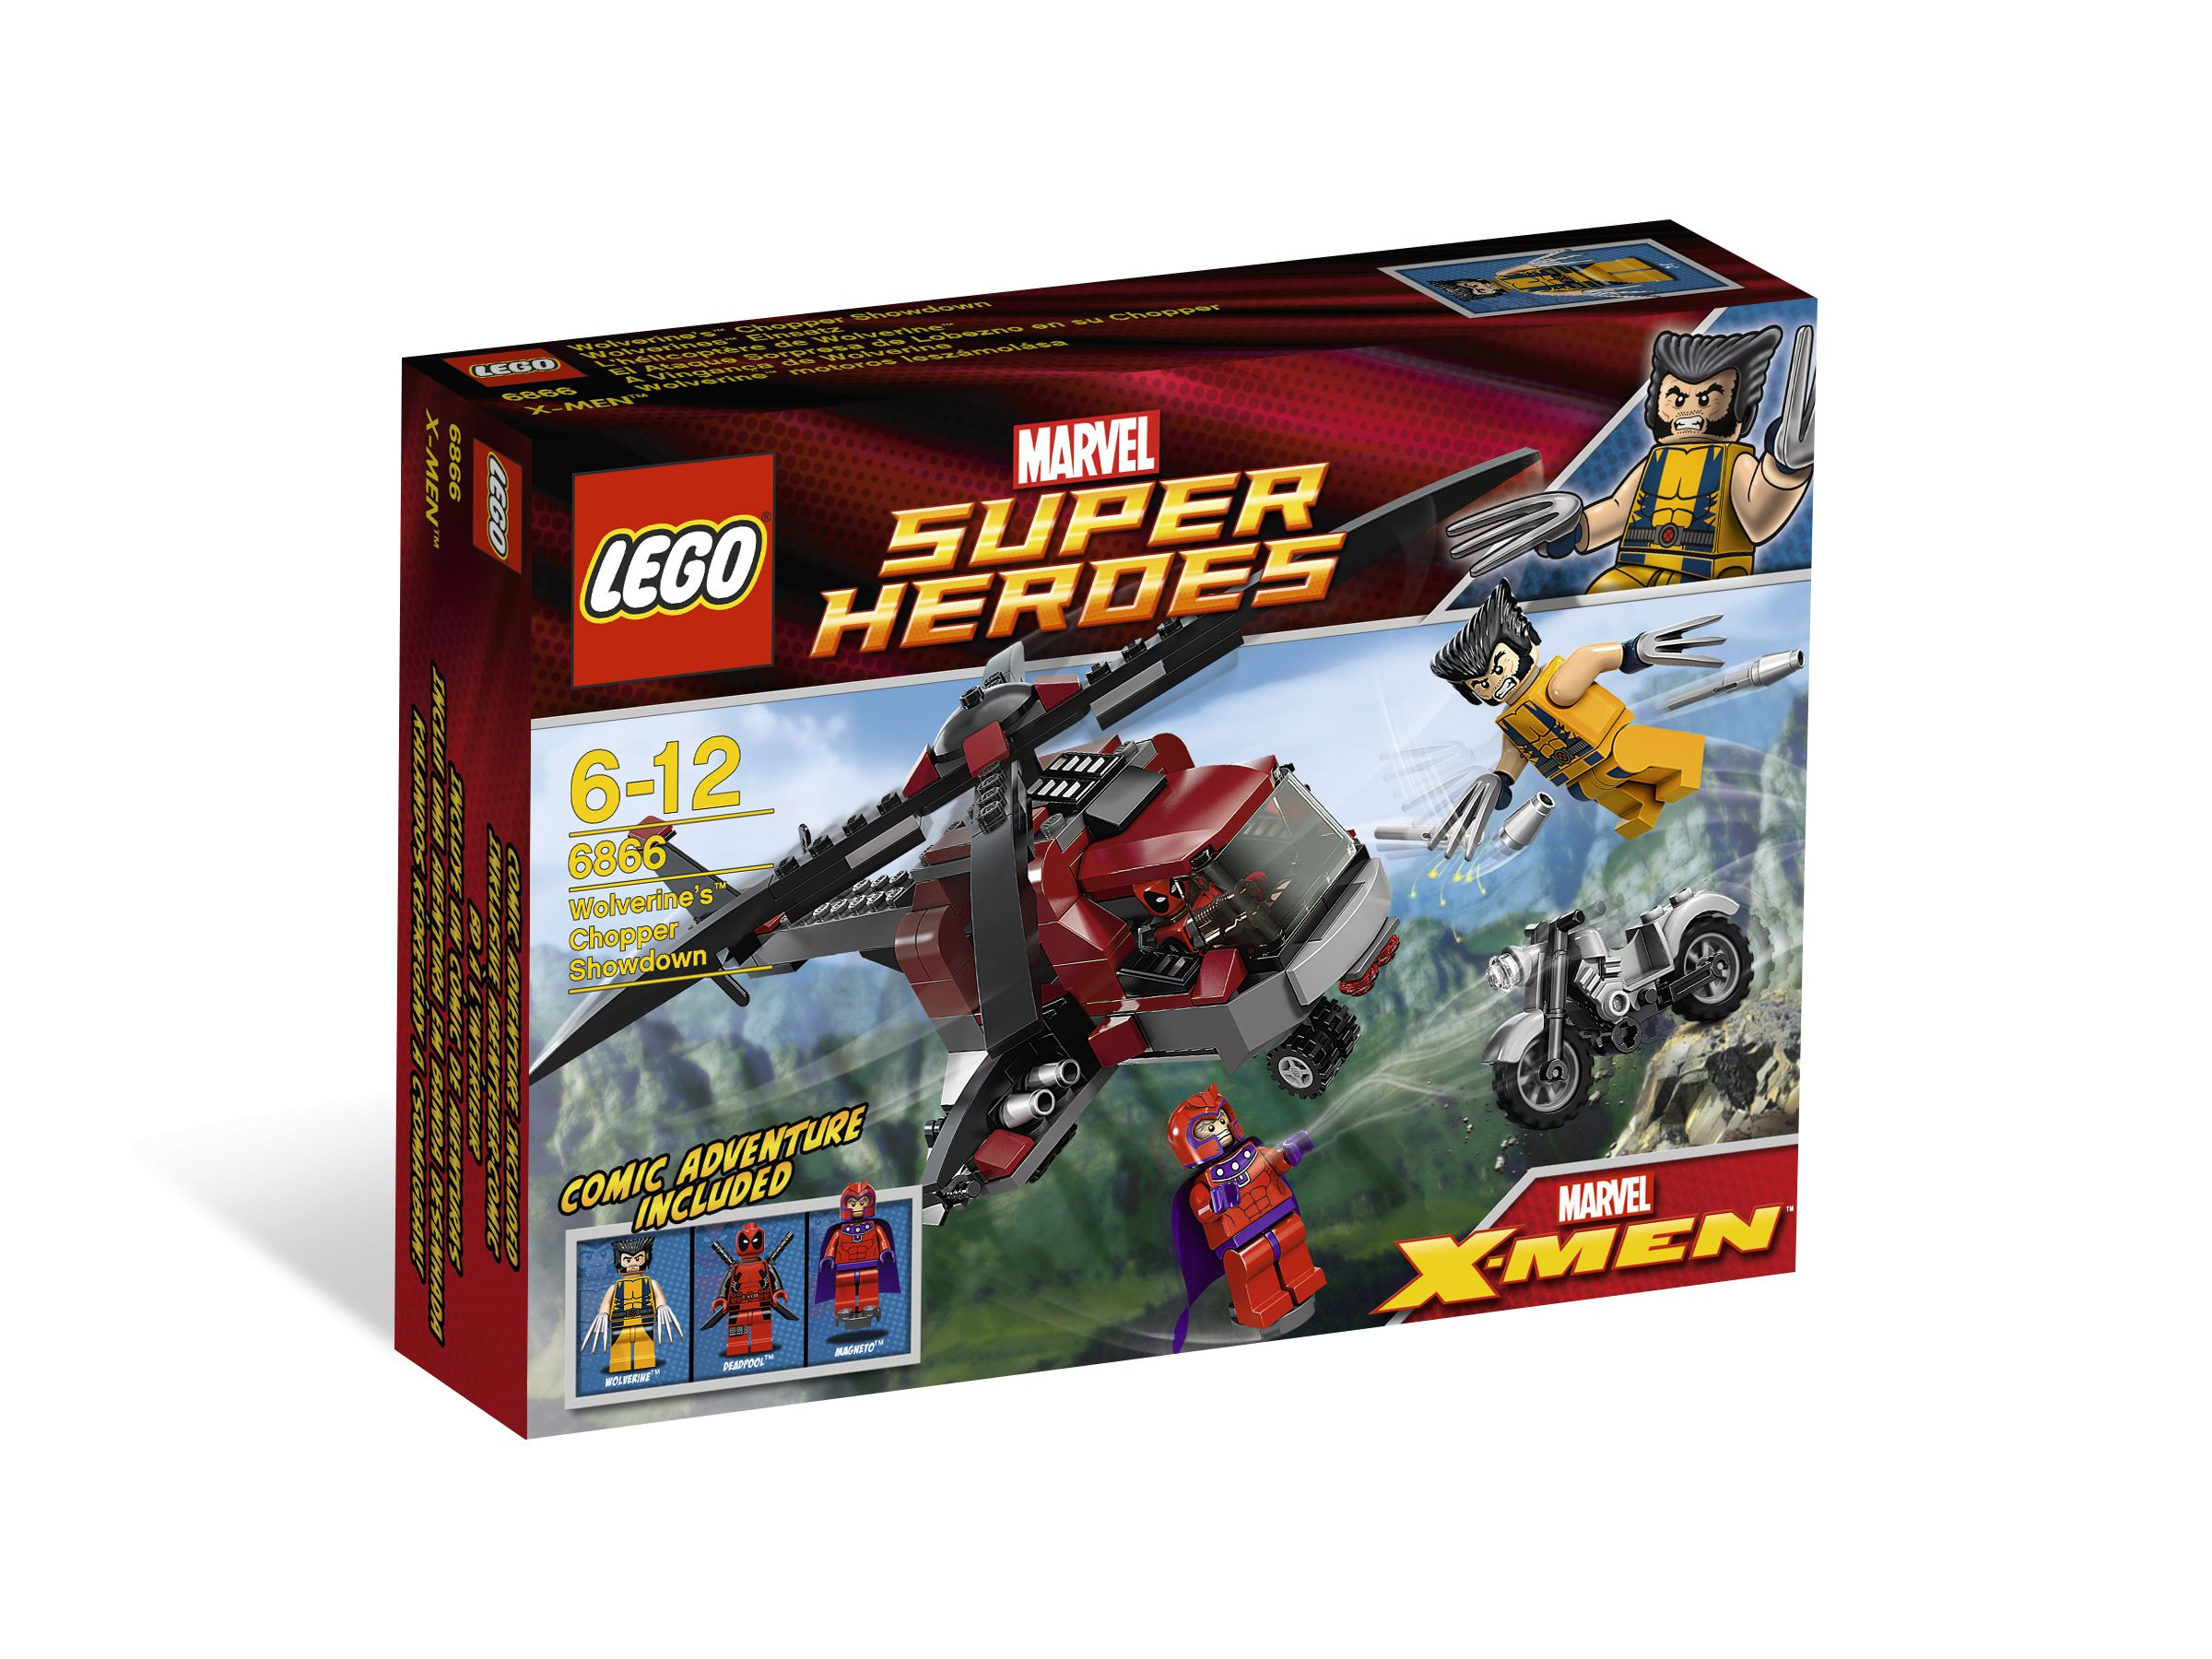 LEGO Super Heroes 6866 Wolverine's Chopper Showdown LEGO_6866_alt1.jpg